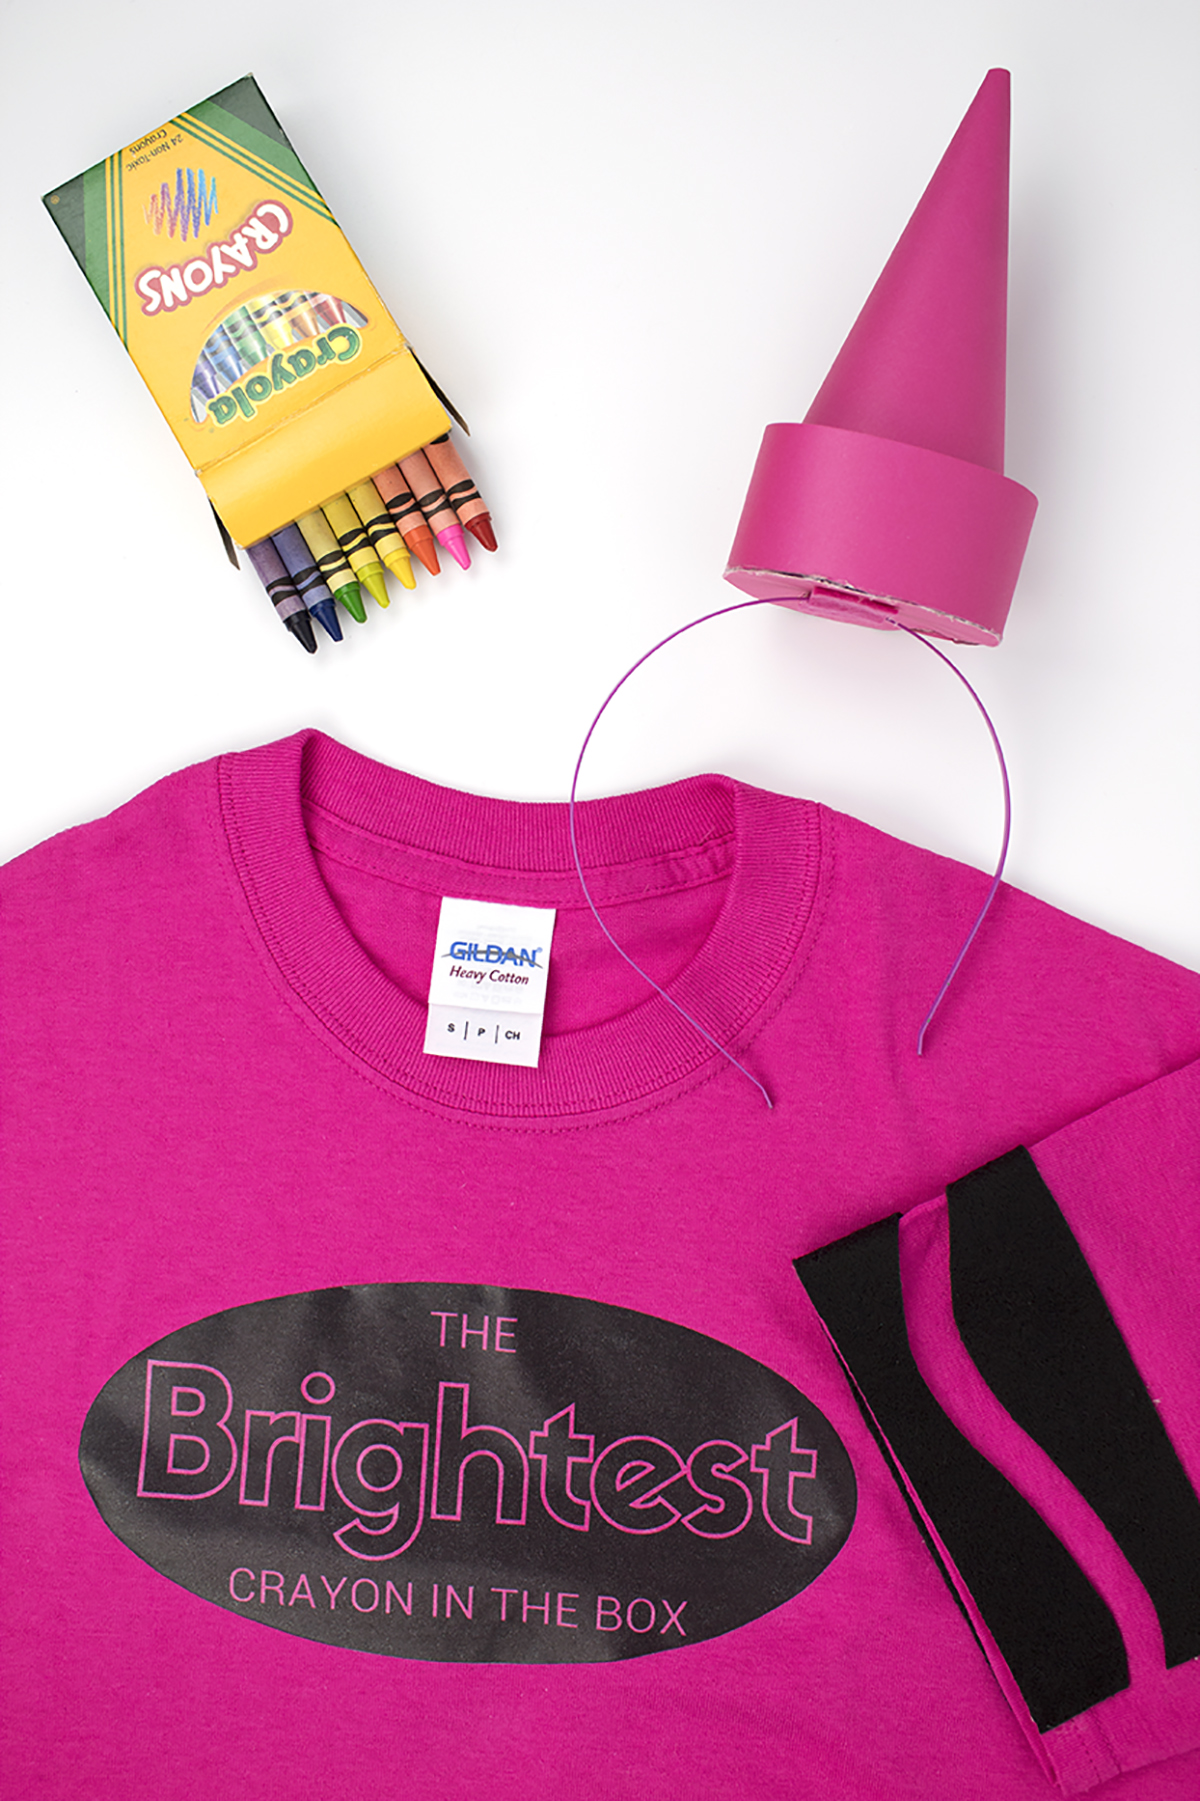 Why be an ordinary crayon when you can be the BRIGHTEST crayon in the box?! Check out this DIY crayon costume project, and download the free printable so that you can be the brightest crayon too! Click for the full DIY. #crayoncostume #lastminutecostume #groupcostume #diycostume